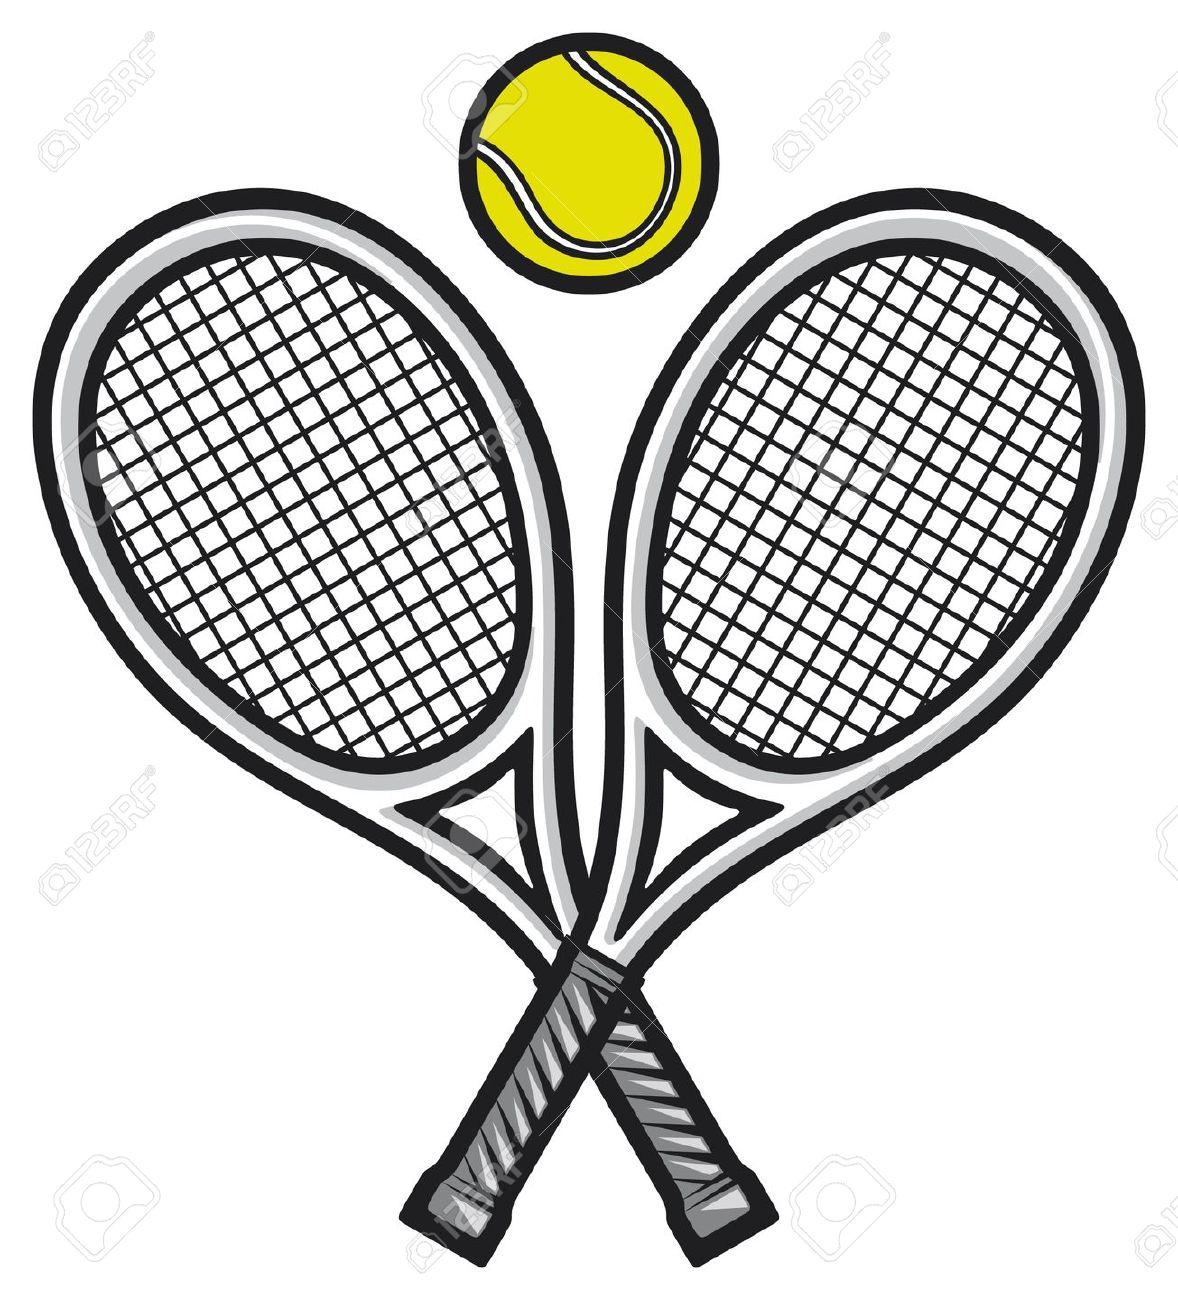 Free Tennis Clipart Pictures.